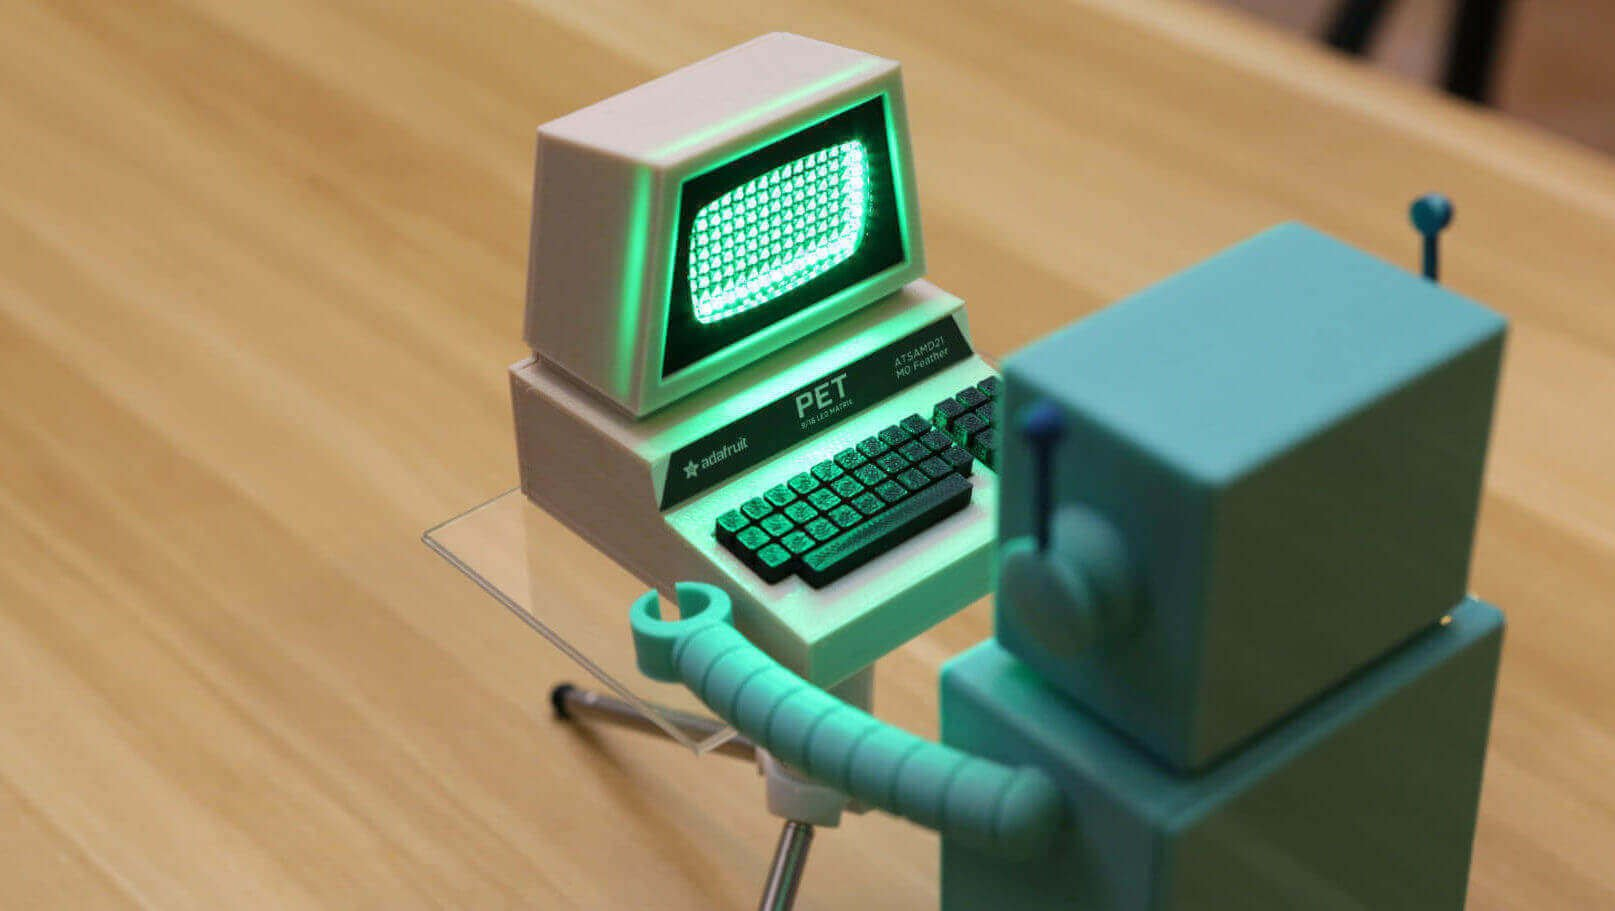 3D Print a Mini Commodore PET with A Working LED Screen | All3DP